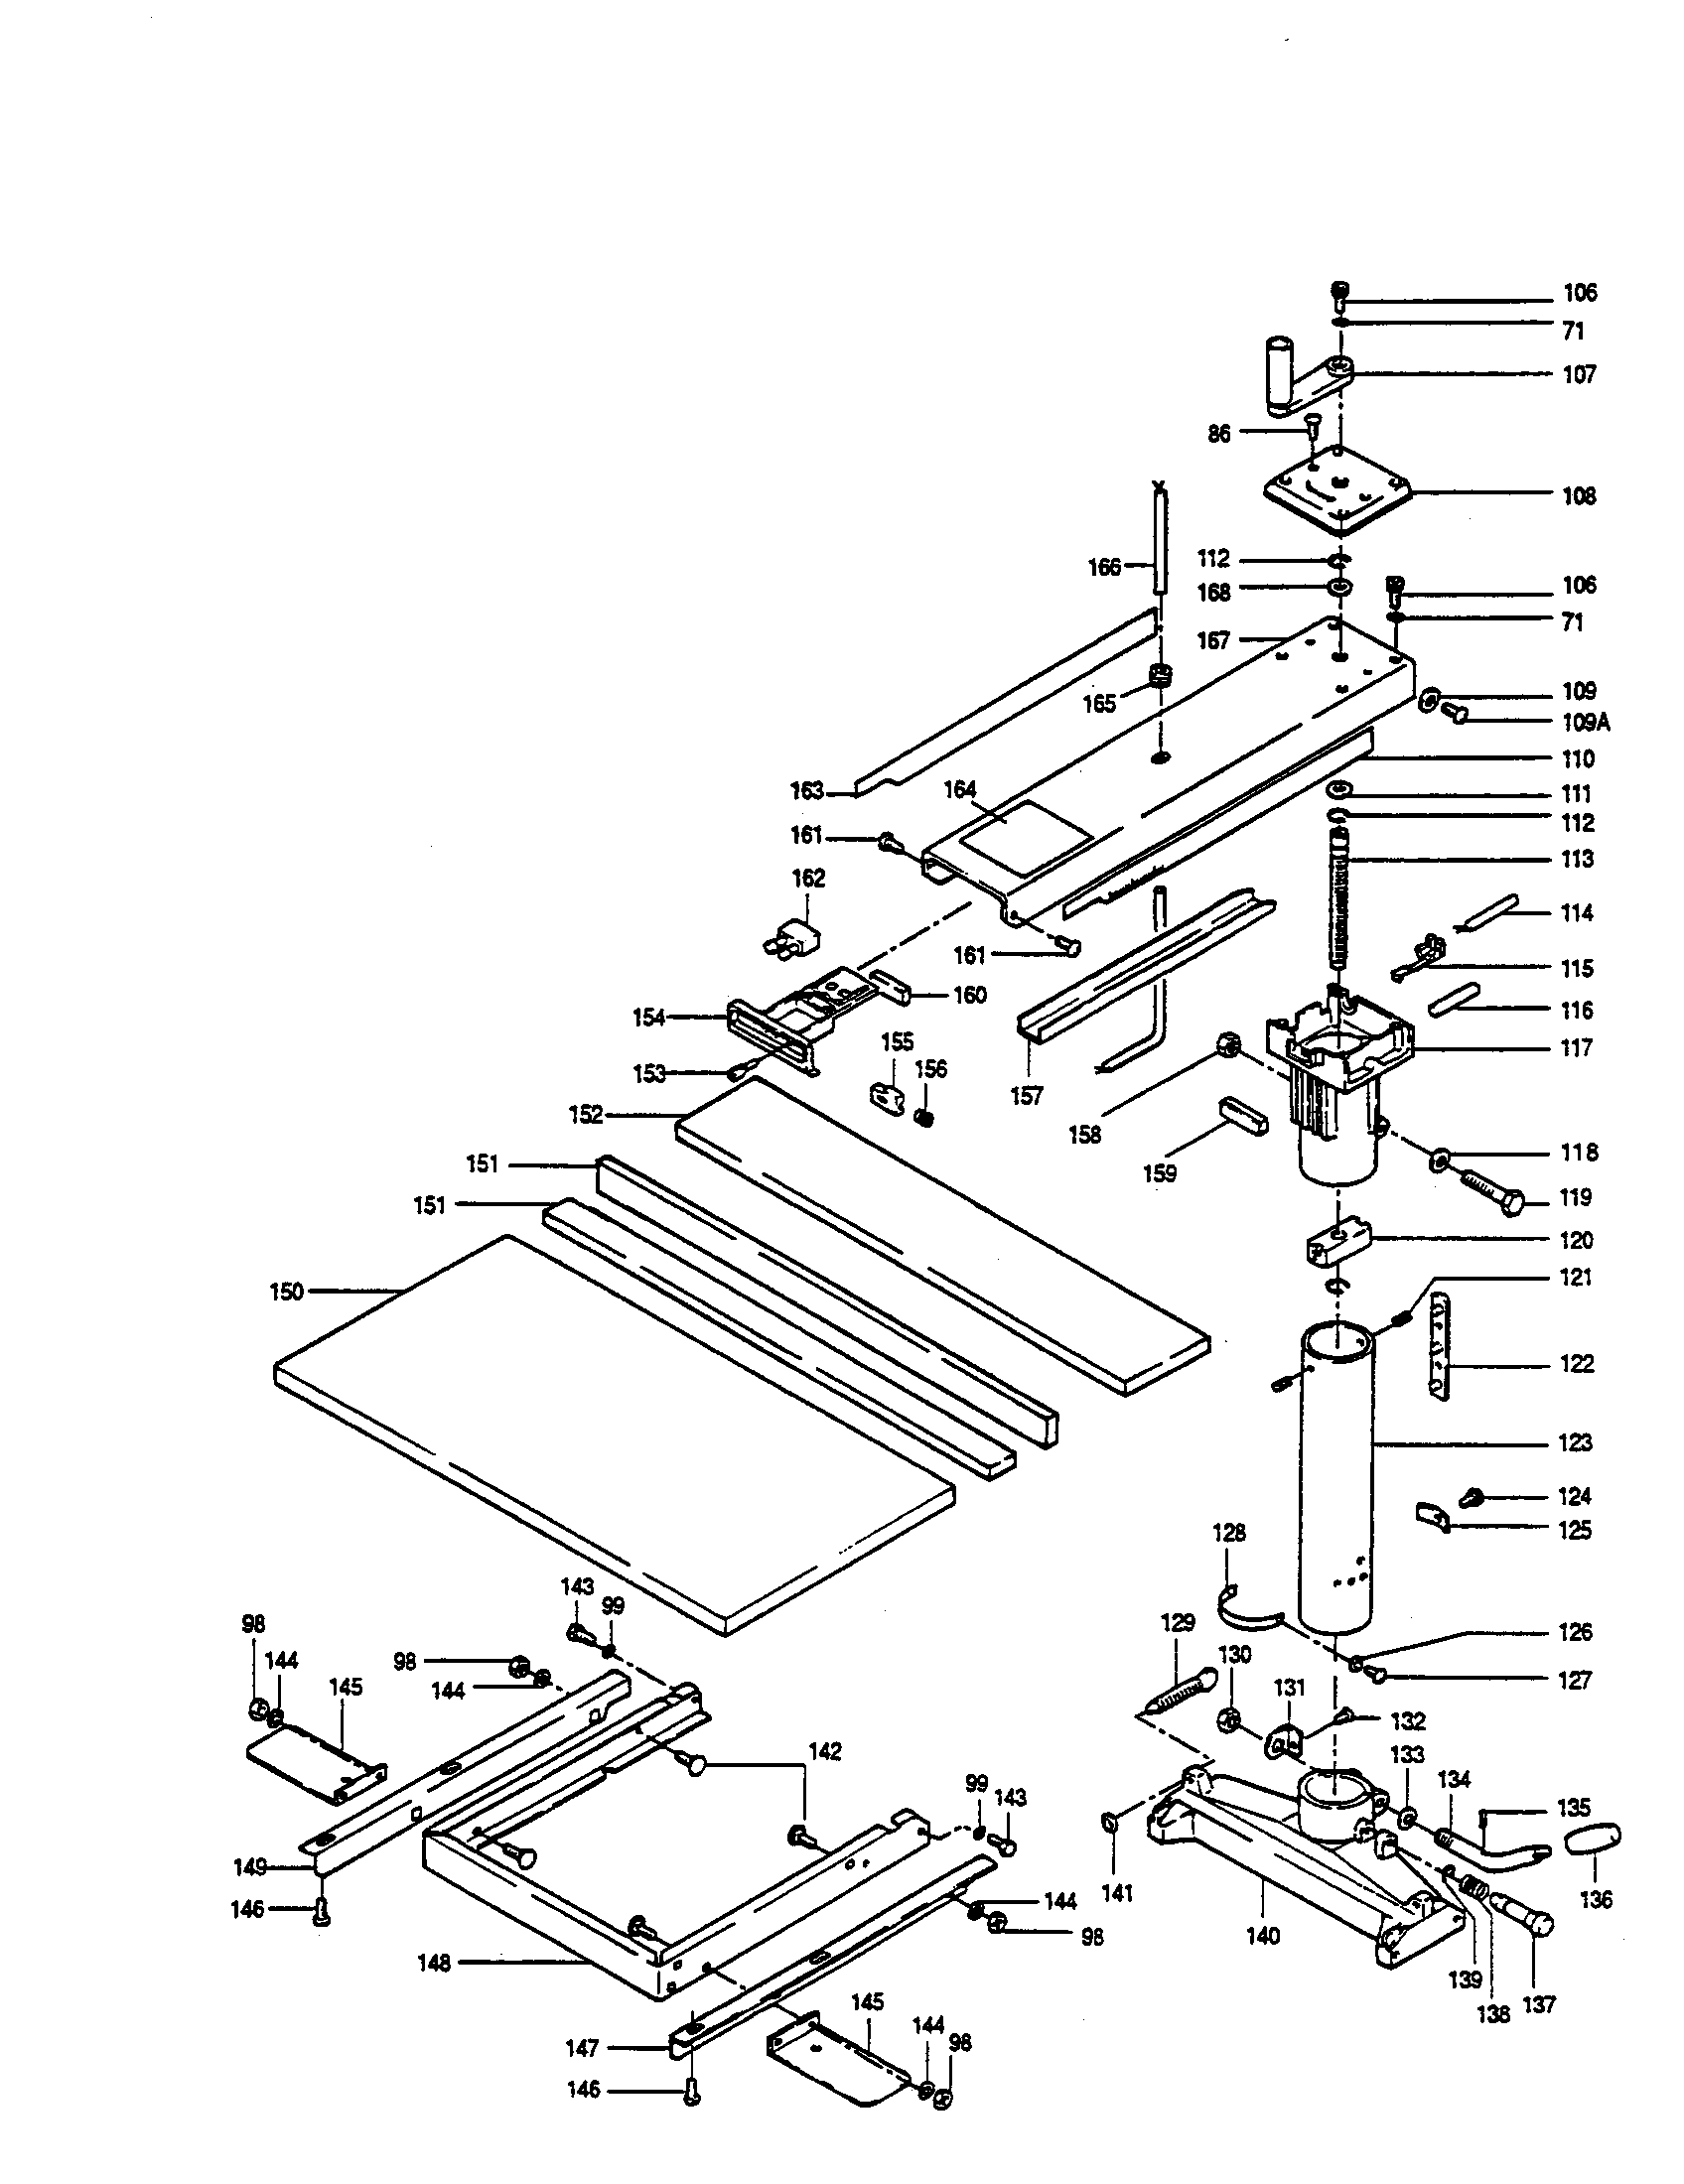 Ryobi RA-202 main table / base diagram